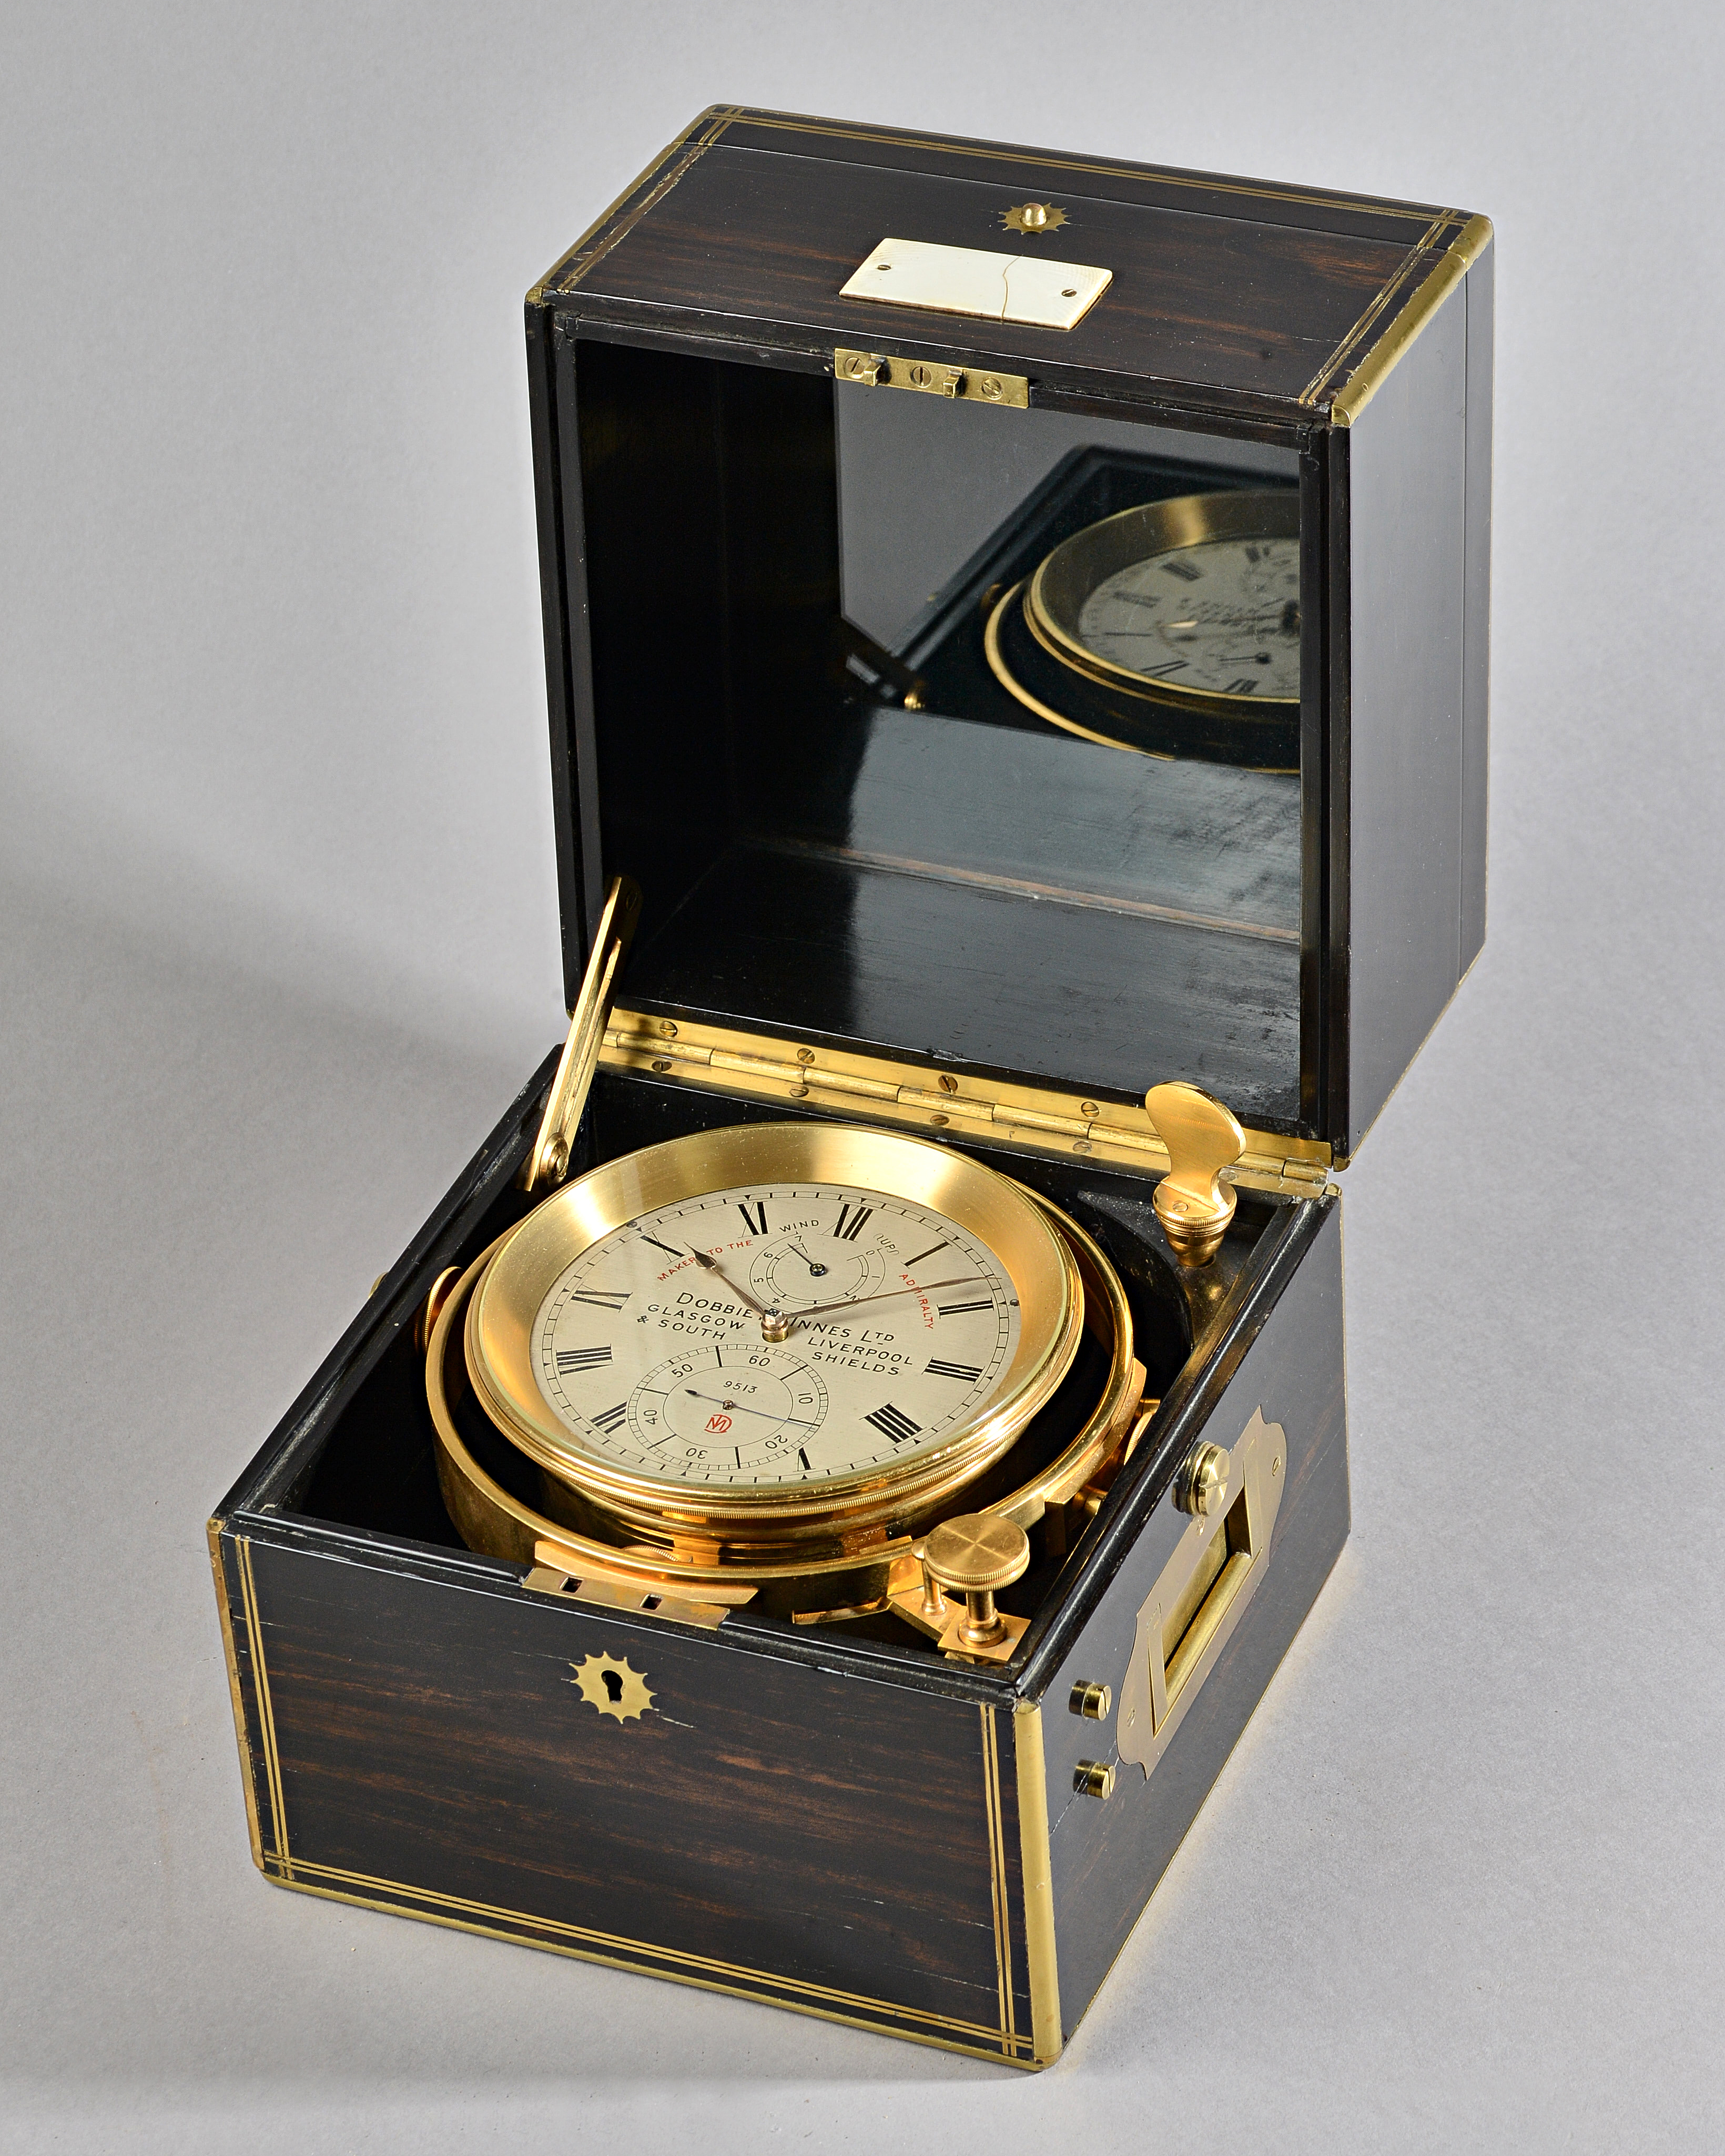 A Fine brass-mounted calamander eight-day marine chronometer with Poole's auxillary compensation Image